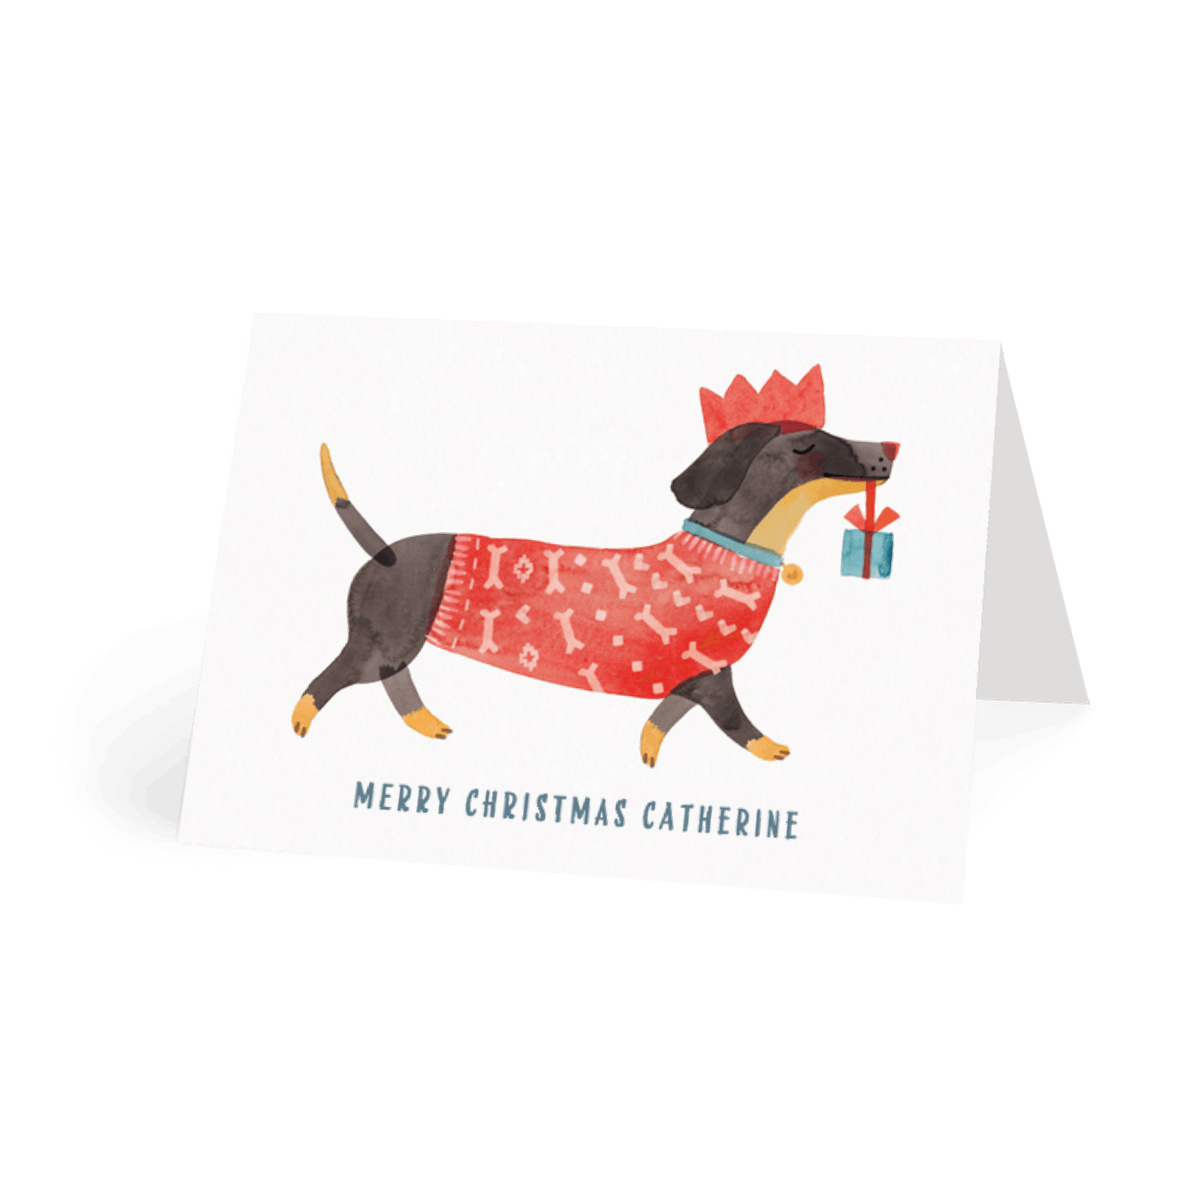 Https%3a%2f%2fwww.papier.com%2fproduct image%2f28846%2f14%2fchristmas dachshund 7240 front 1567714222.png?ixlib=rb 1.1